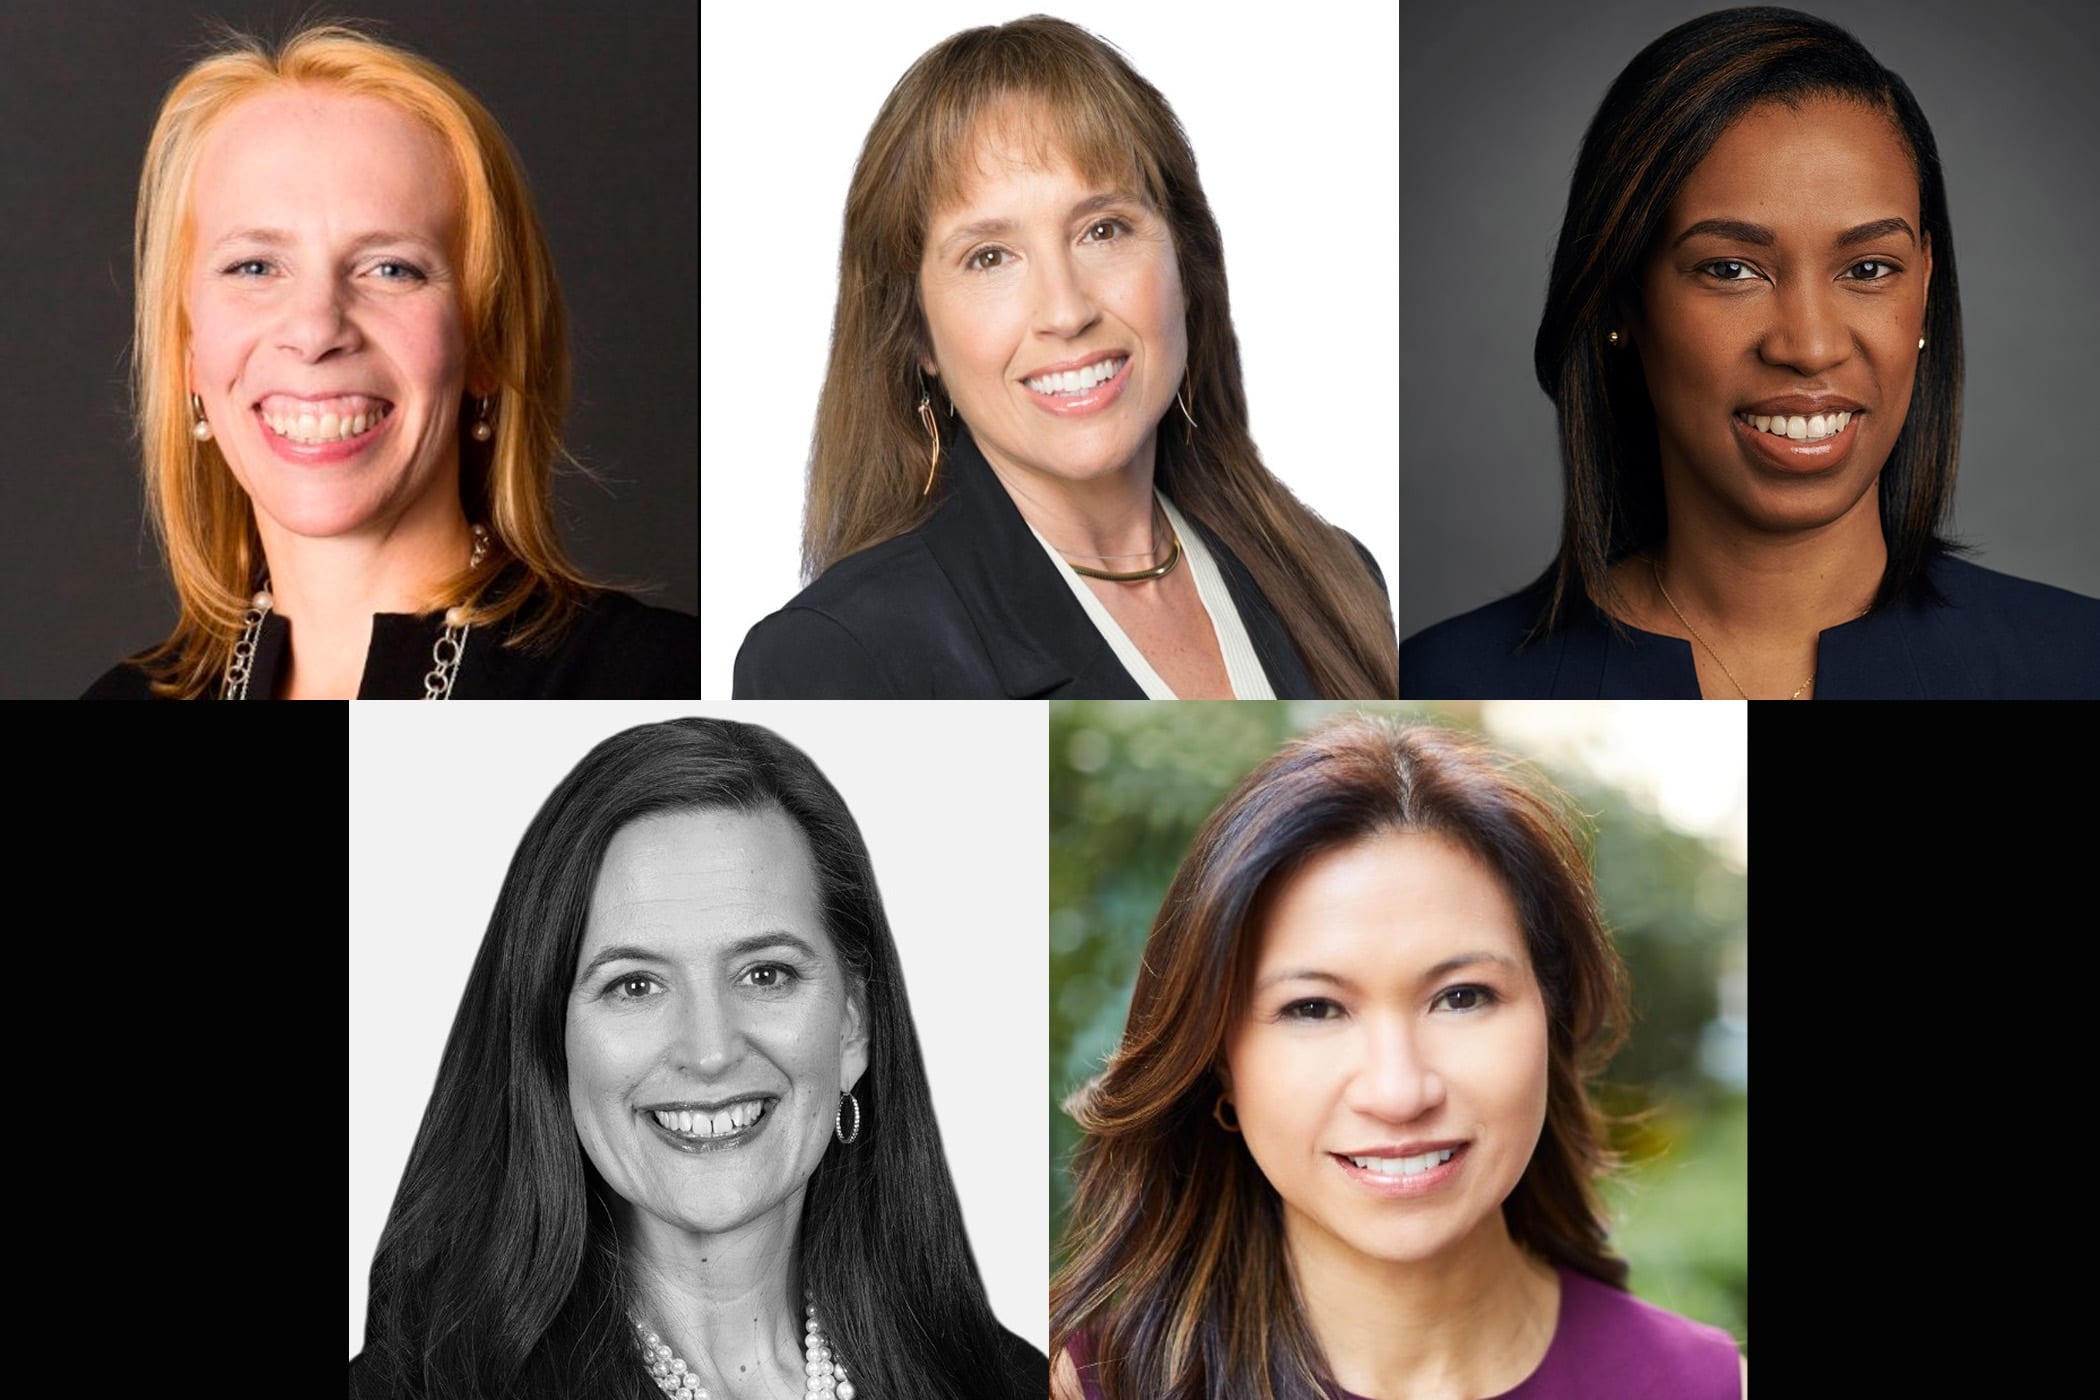 Women Panel 3 Top Female CRE Pros on the Future of Women in the Industry